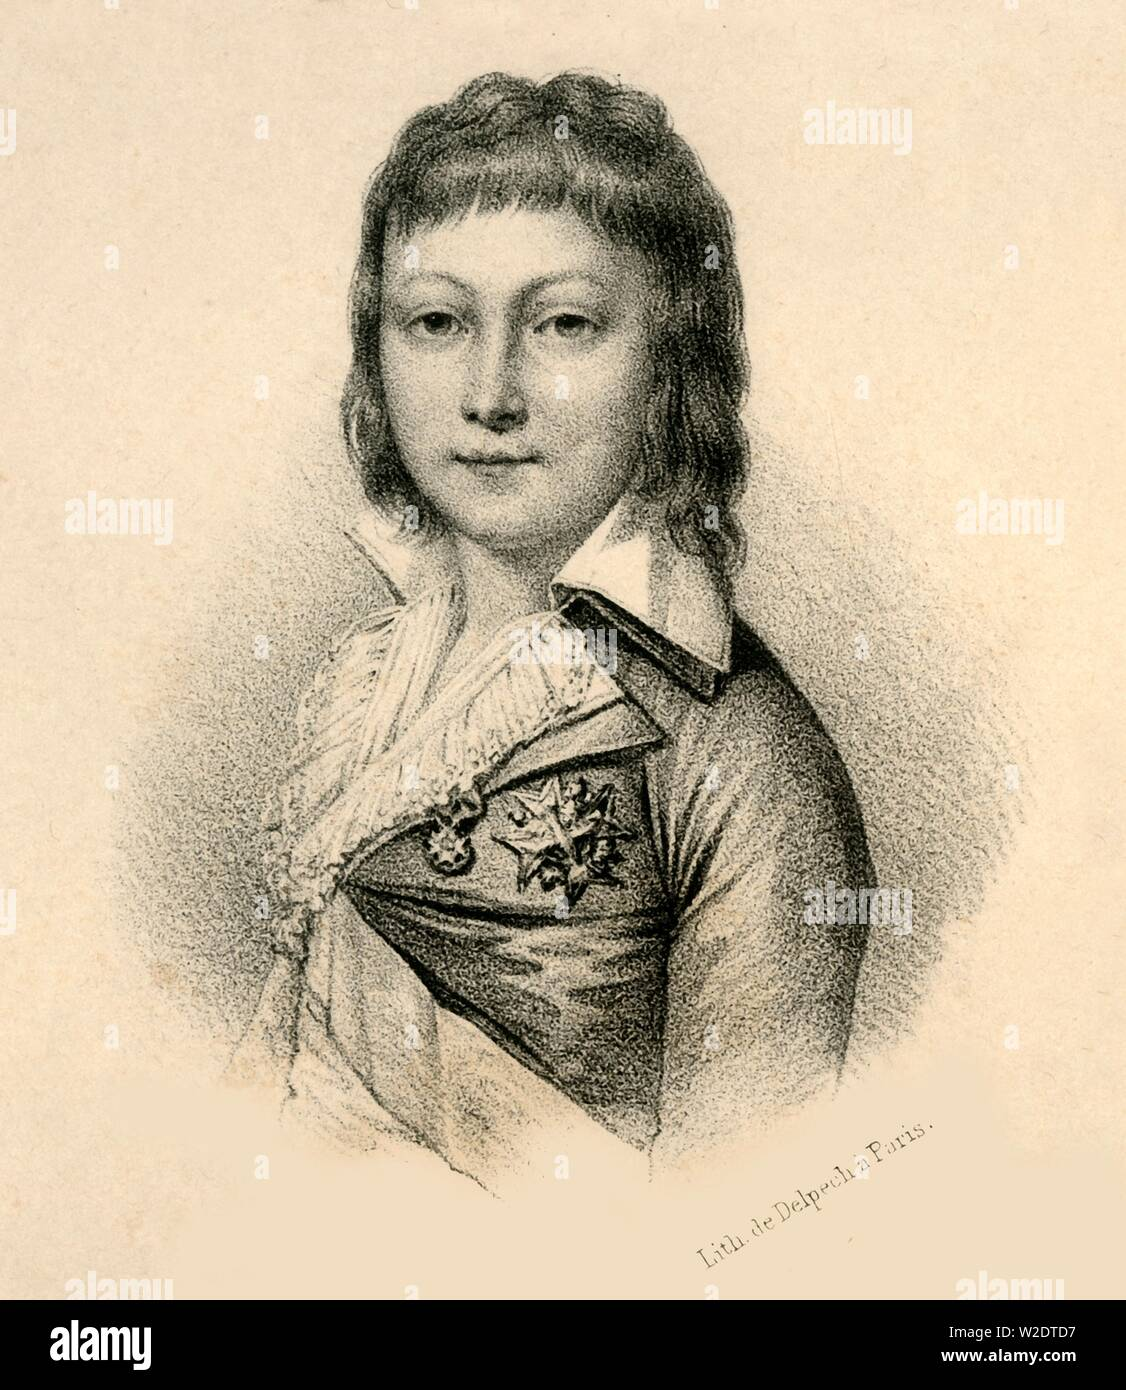 """'Louis XVII', (1785-1795), c1830. Louis XVII (1785-1795) son of Louis XVI and  Marie Antoinette, became heir apparent and Dauphin of France in 1789, and """"King of France"""" on the execution of his father on 21 January 1793, during the French Revolution. From """"Lith de Delpech"""". [Delpech, Paris] - Stock Image"""